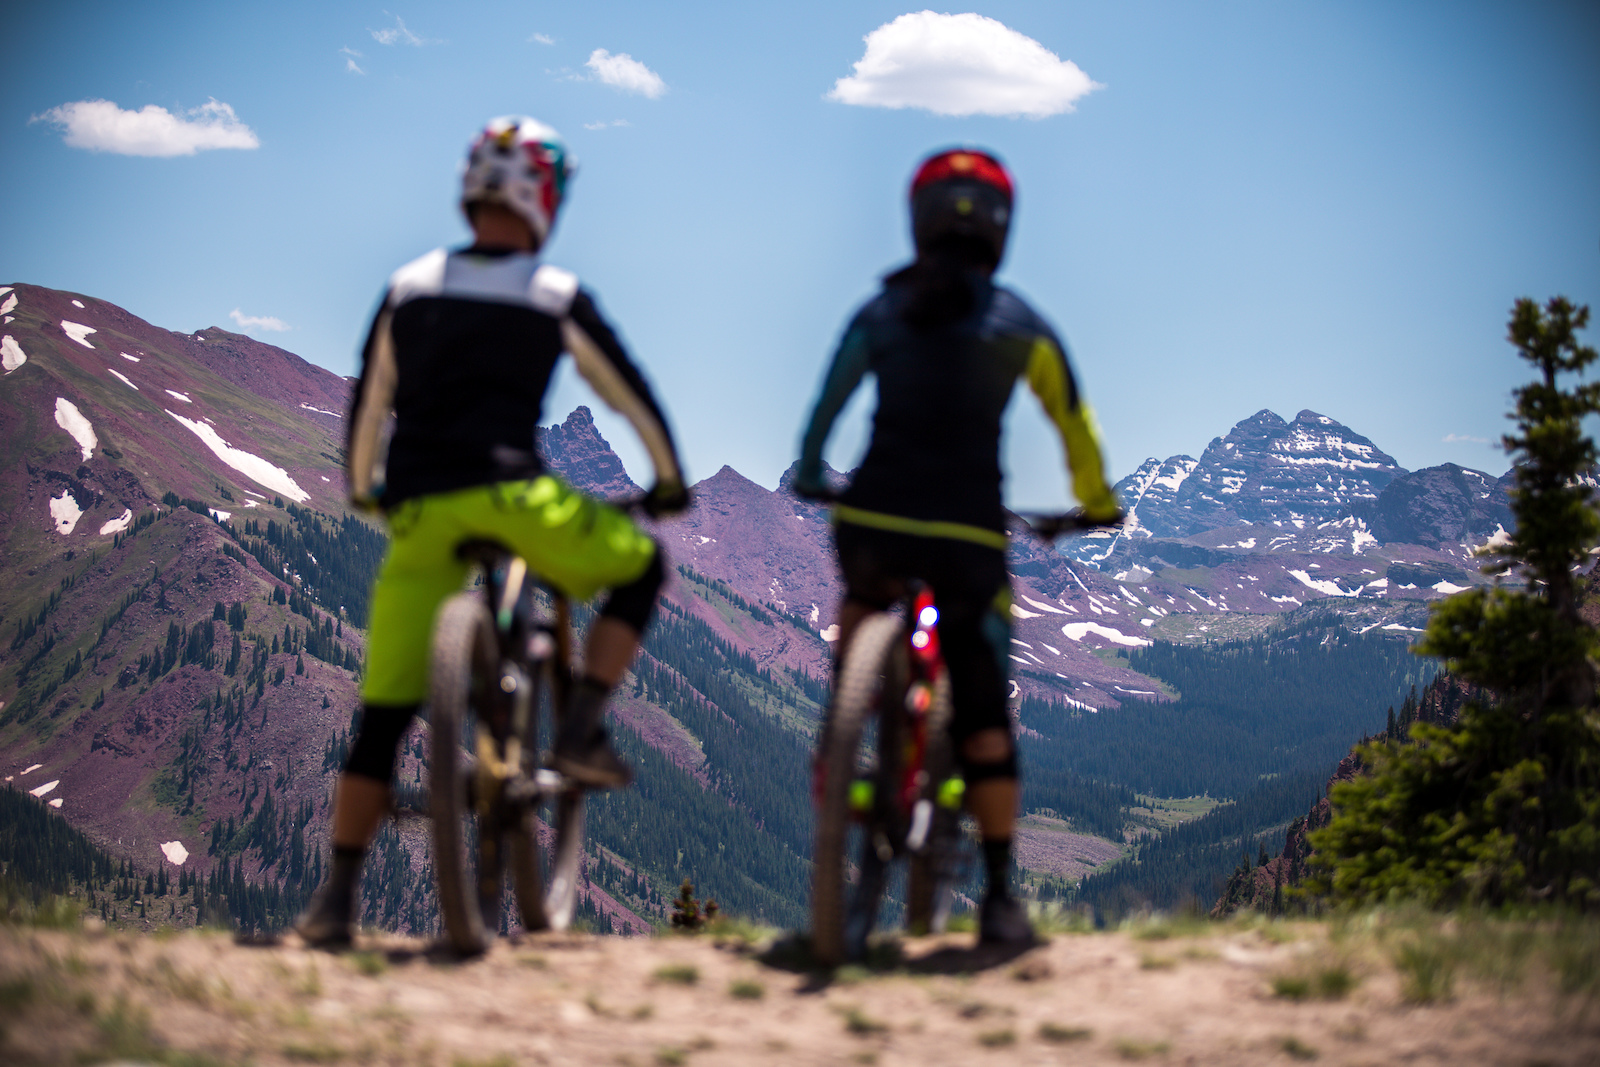 The Maroon Bells claim the most picturesque spot sitting at the top of the second lift at Snowmass.